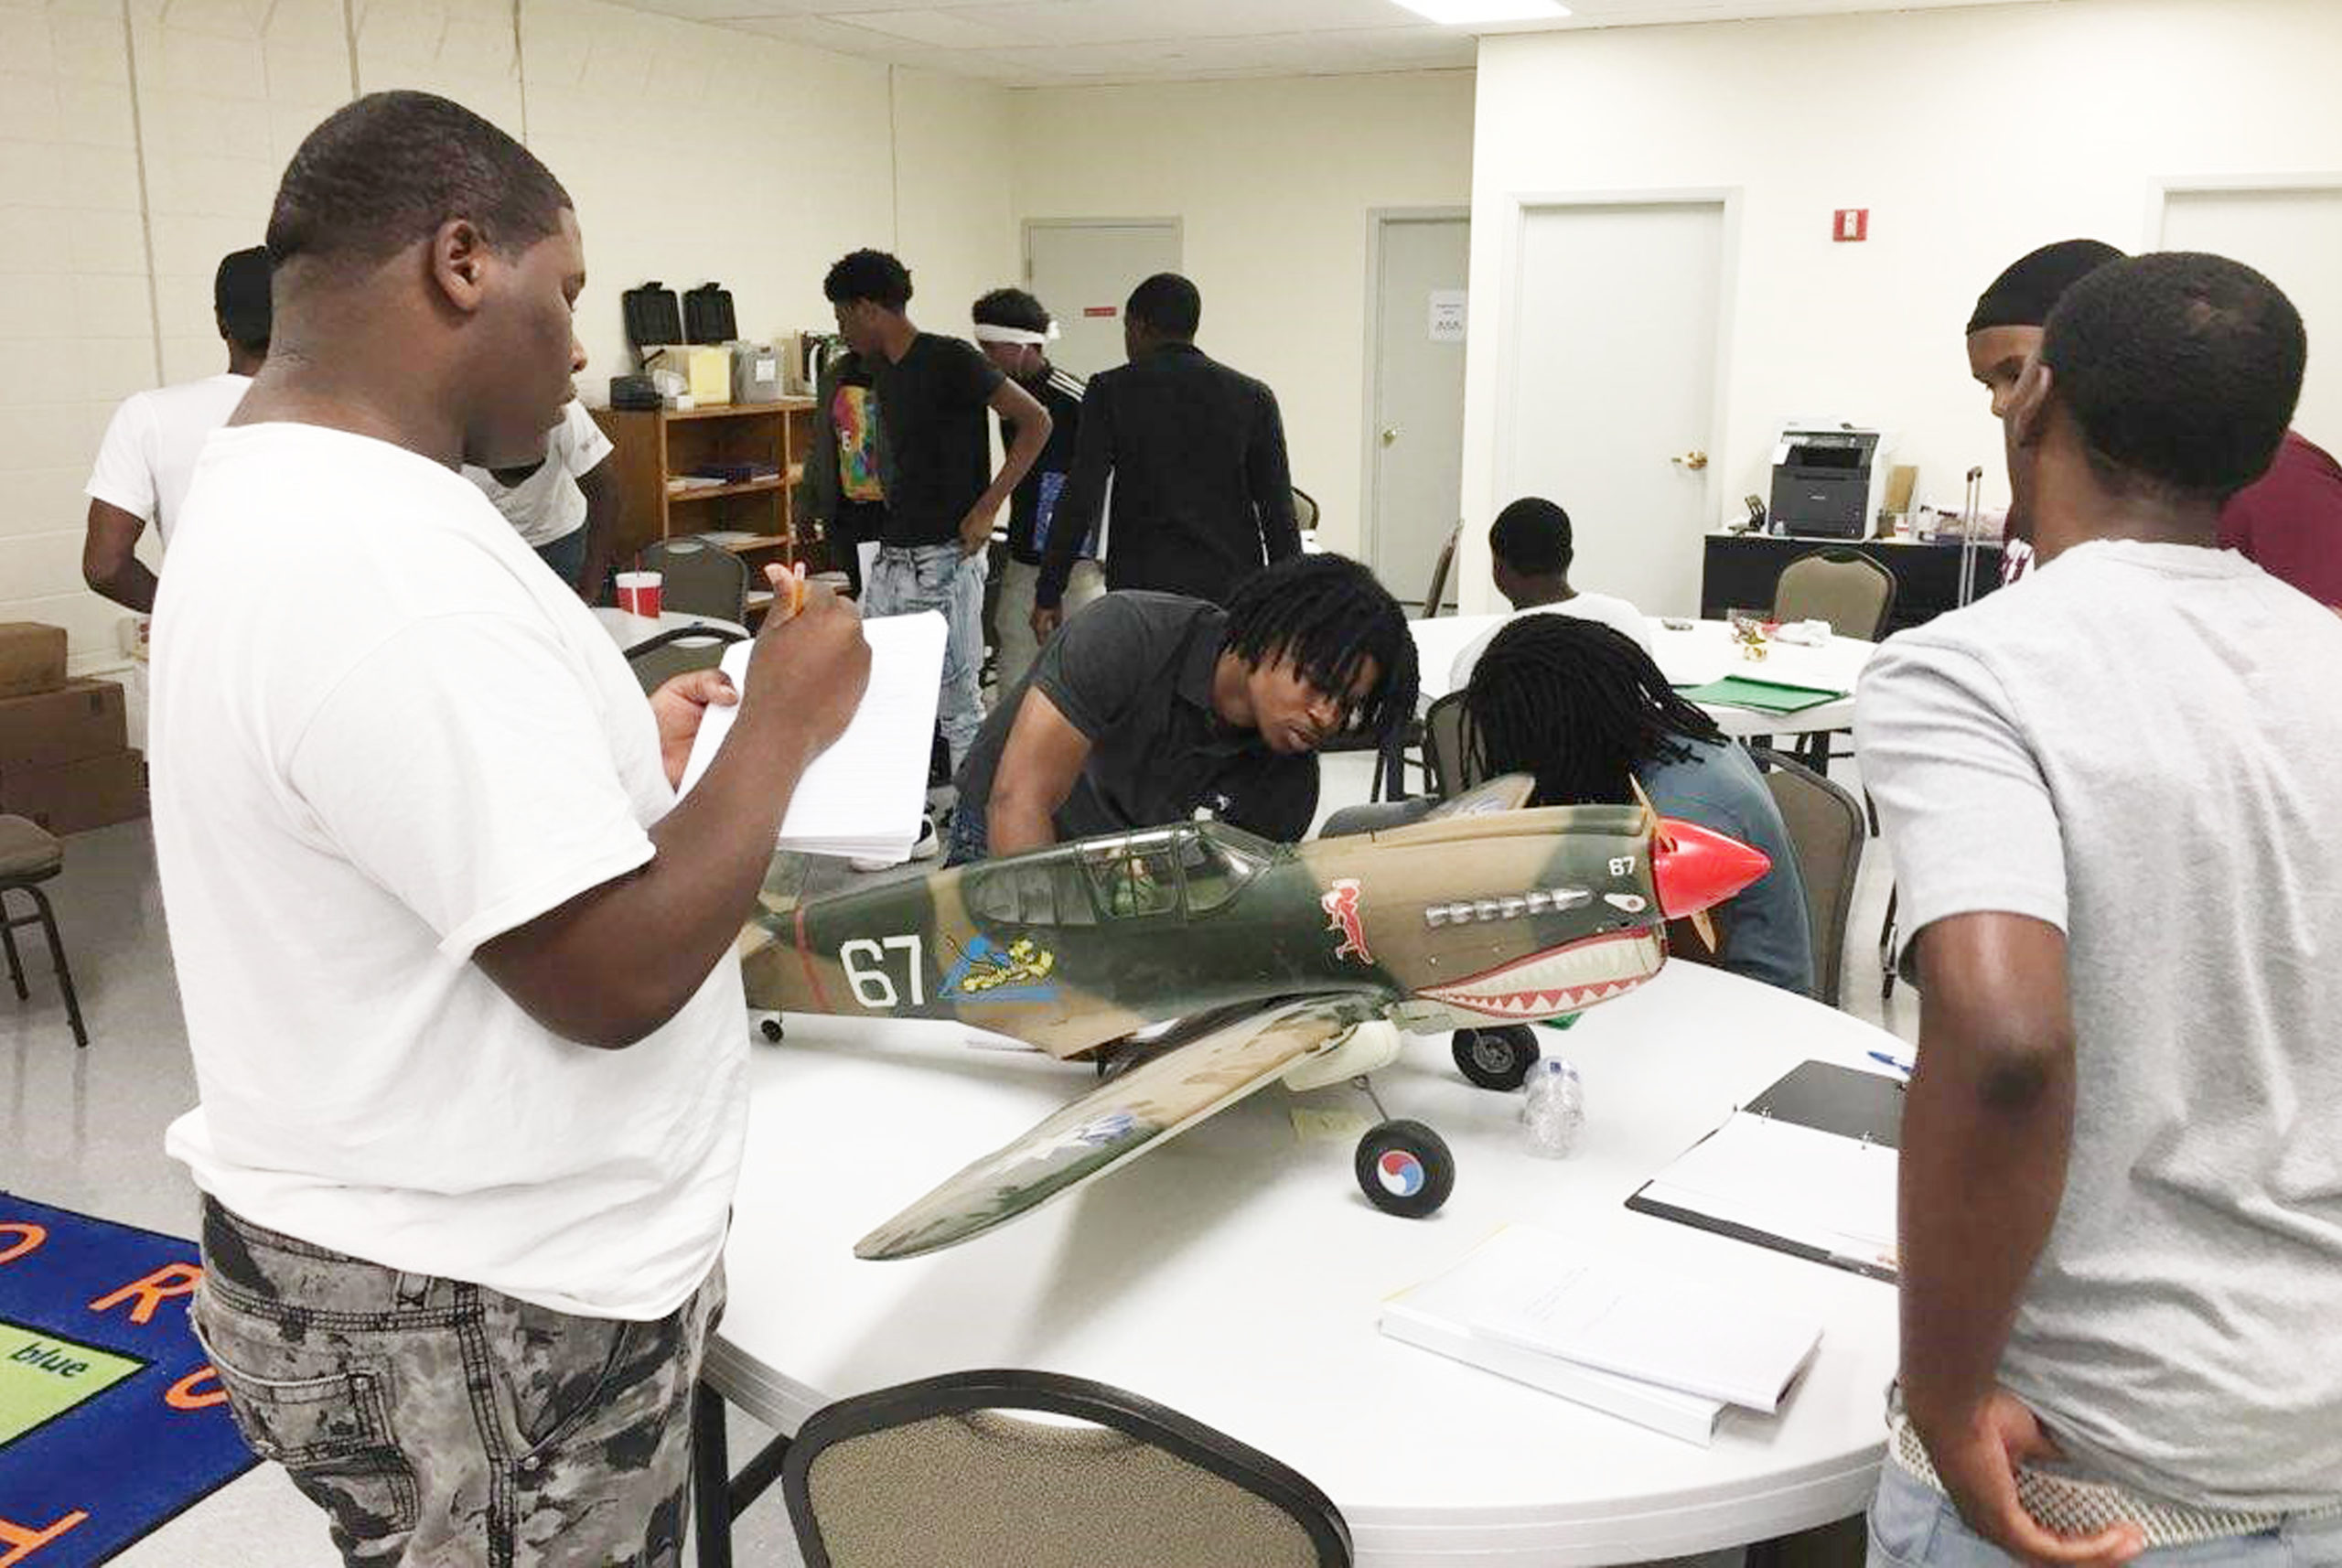 Students looking at a model airplane